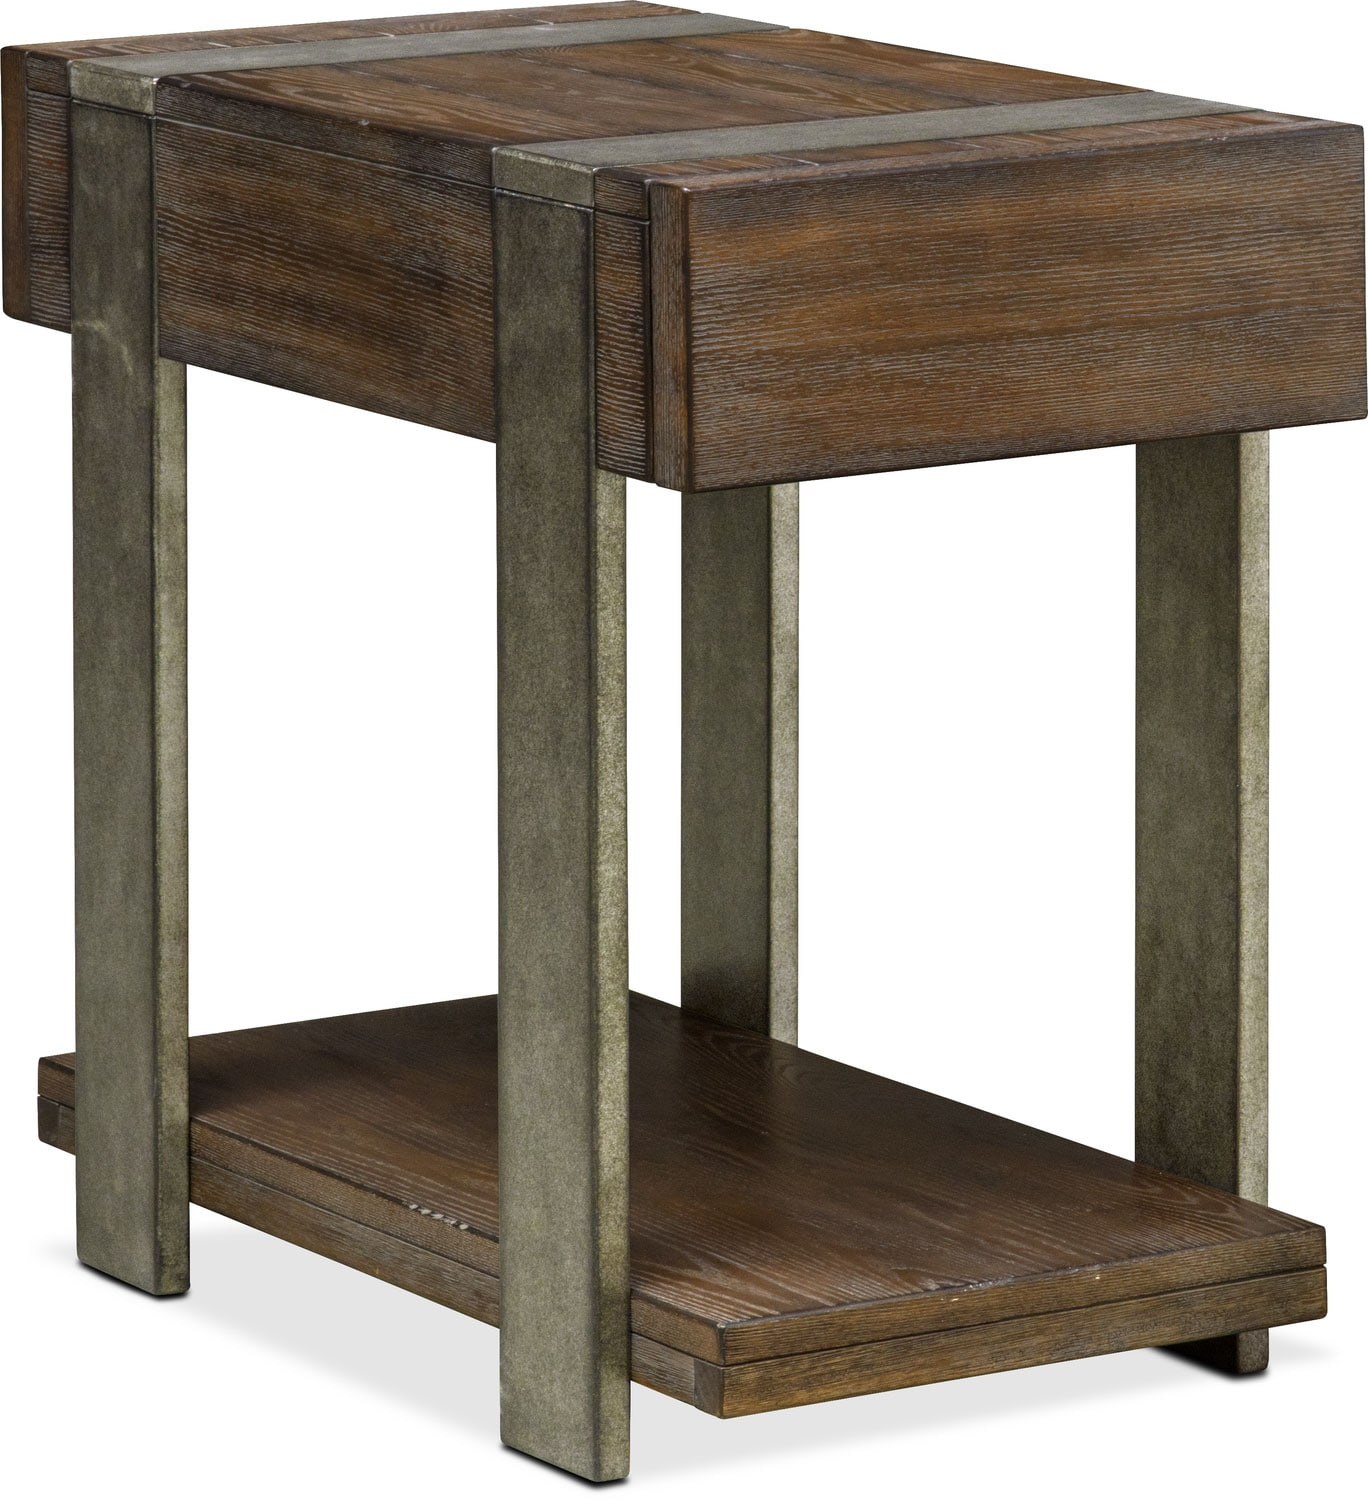 Union City Chairside Table Bark American Signature Furniture